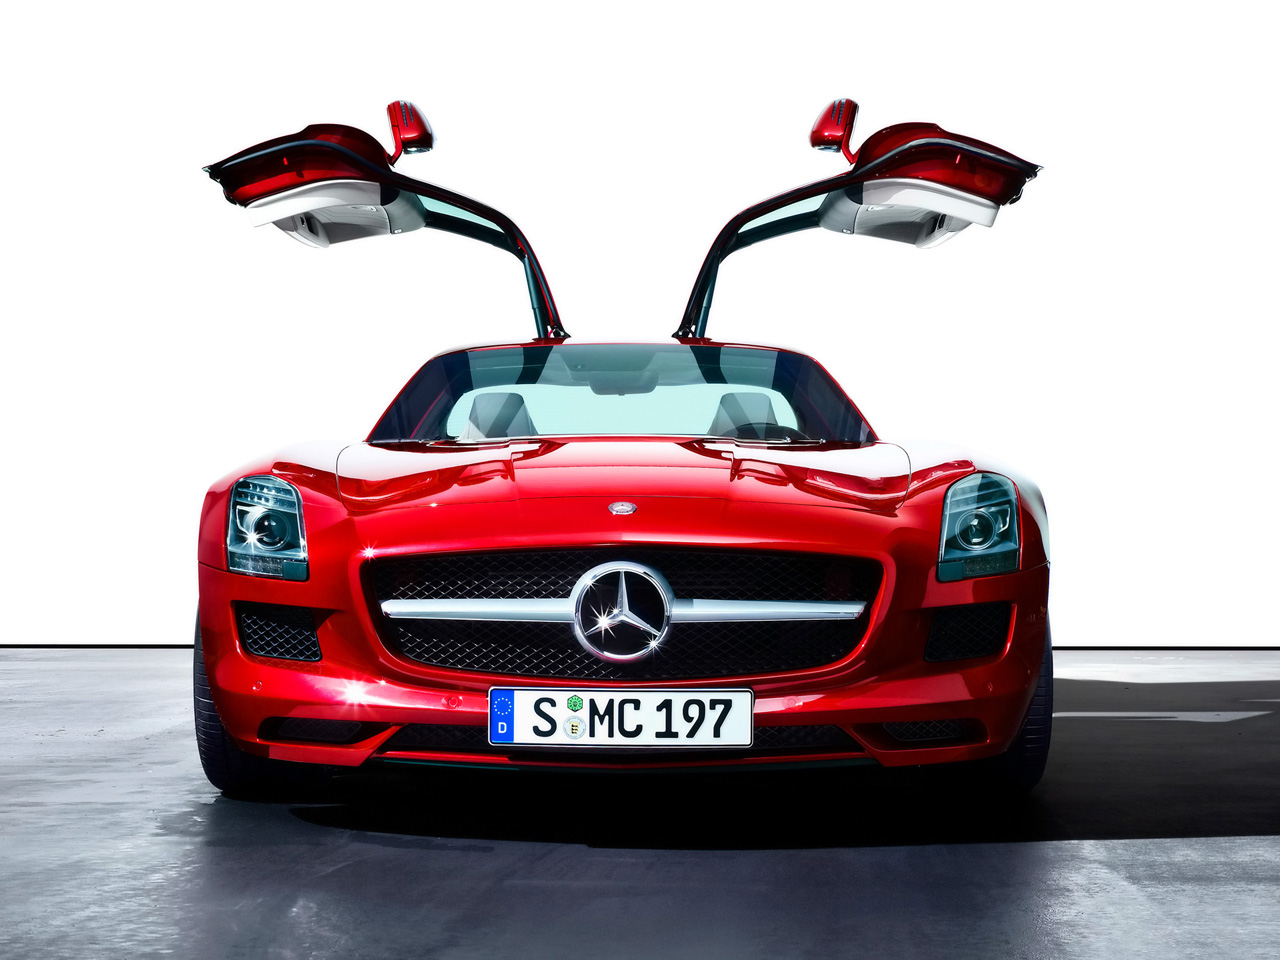 Sports car world meet your desires mercedes sls amg for Mercedes benz sports car amg